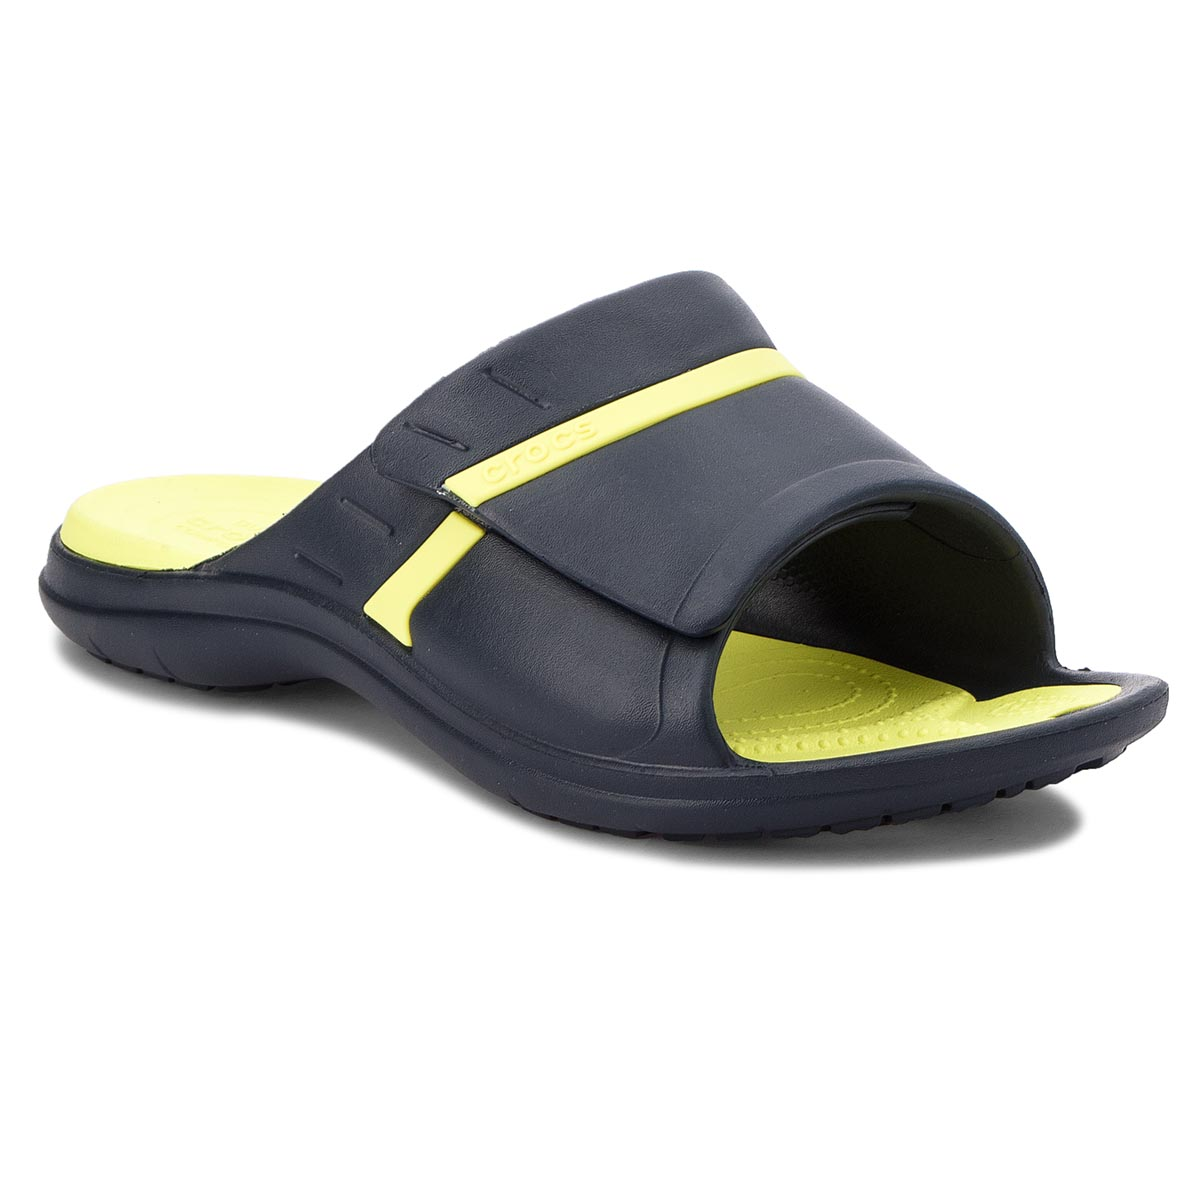 Klapki CROCS - Modi Sport Slide 204144 Navy/Tennis Ball Green